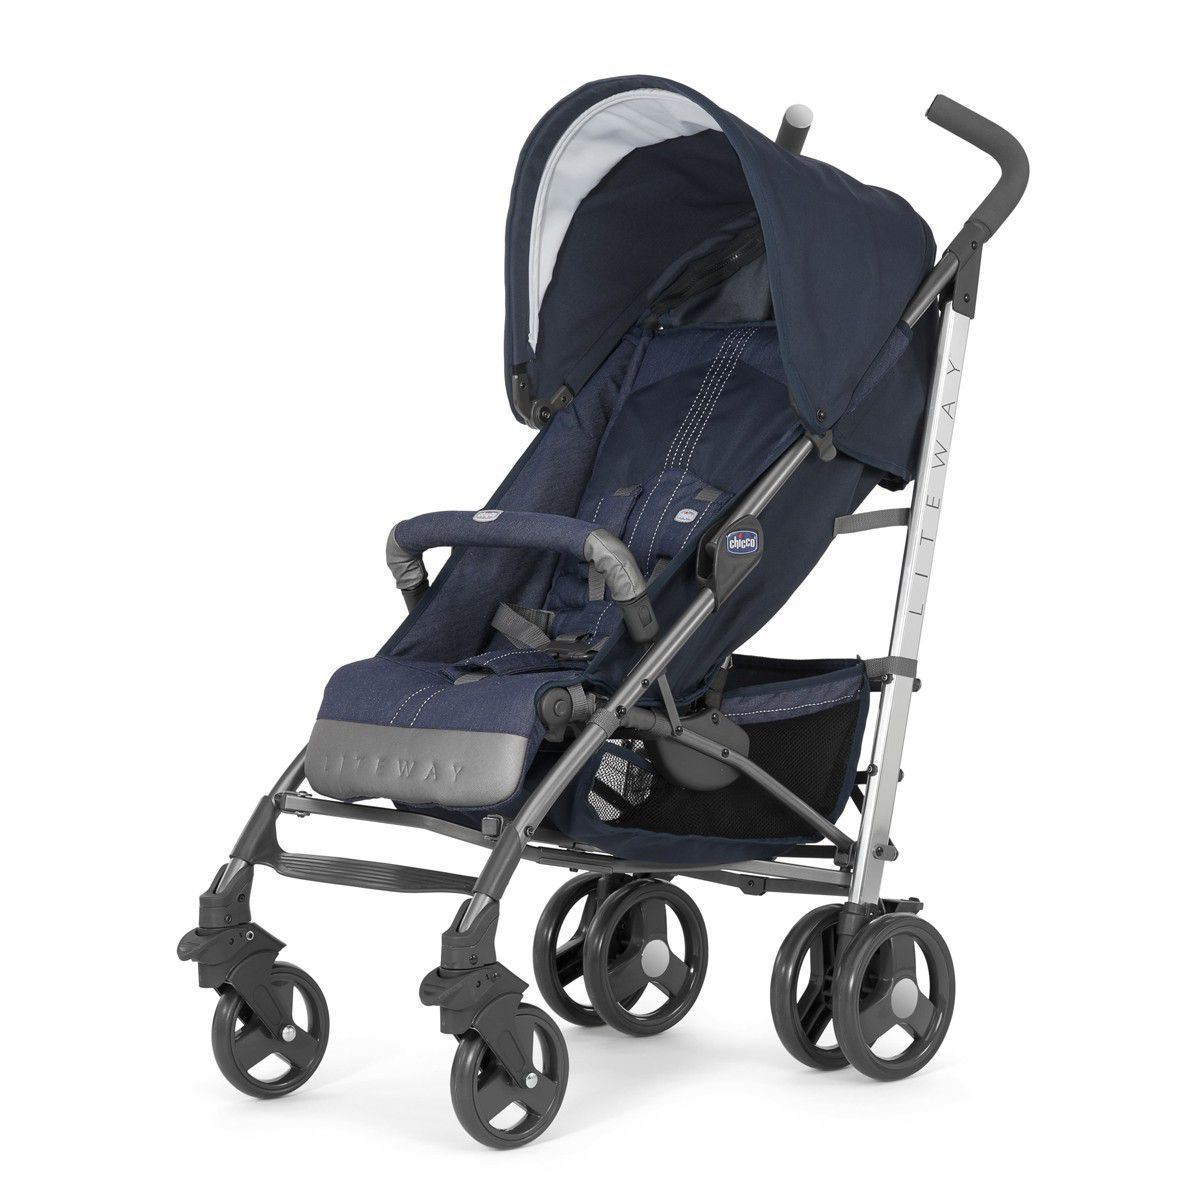 Silla de paseo Lite Way Legend Edition Especial Chicco